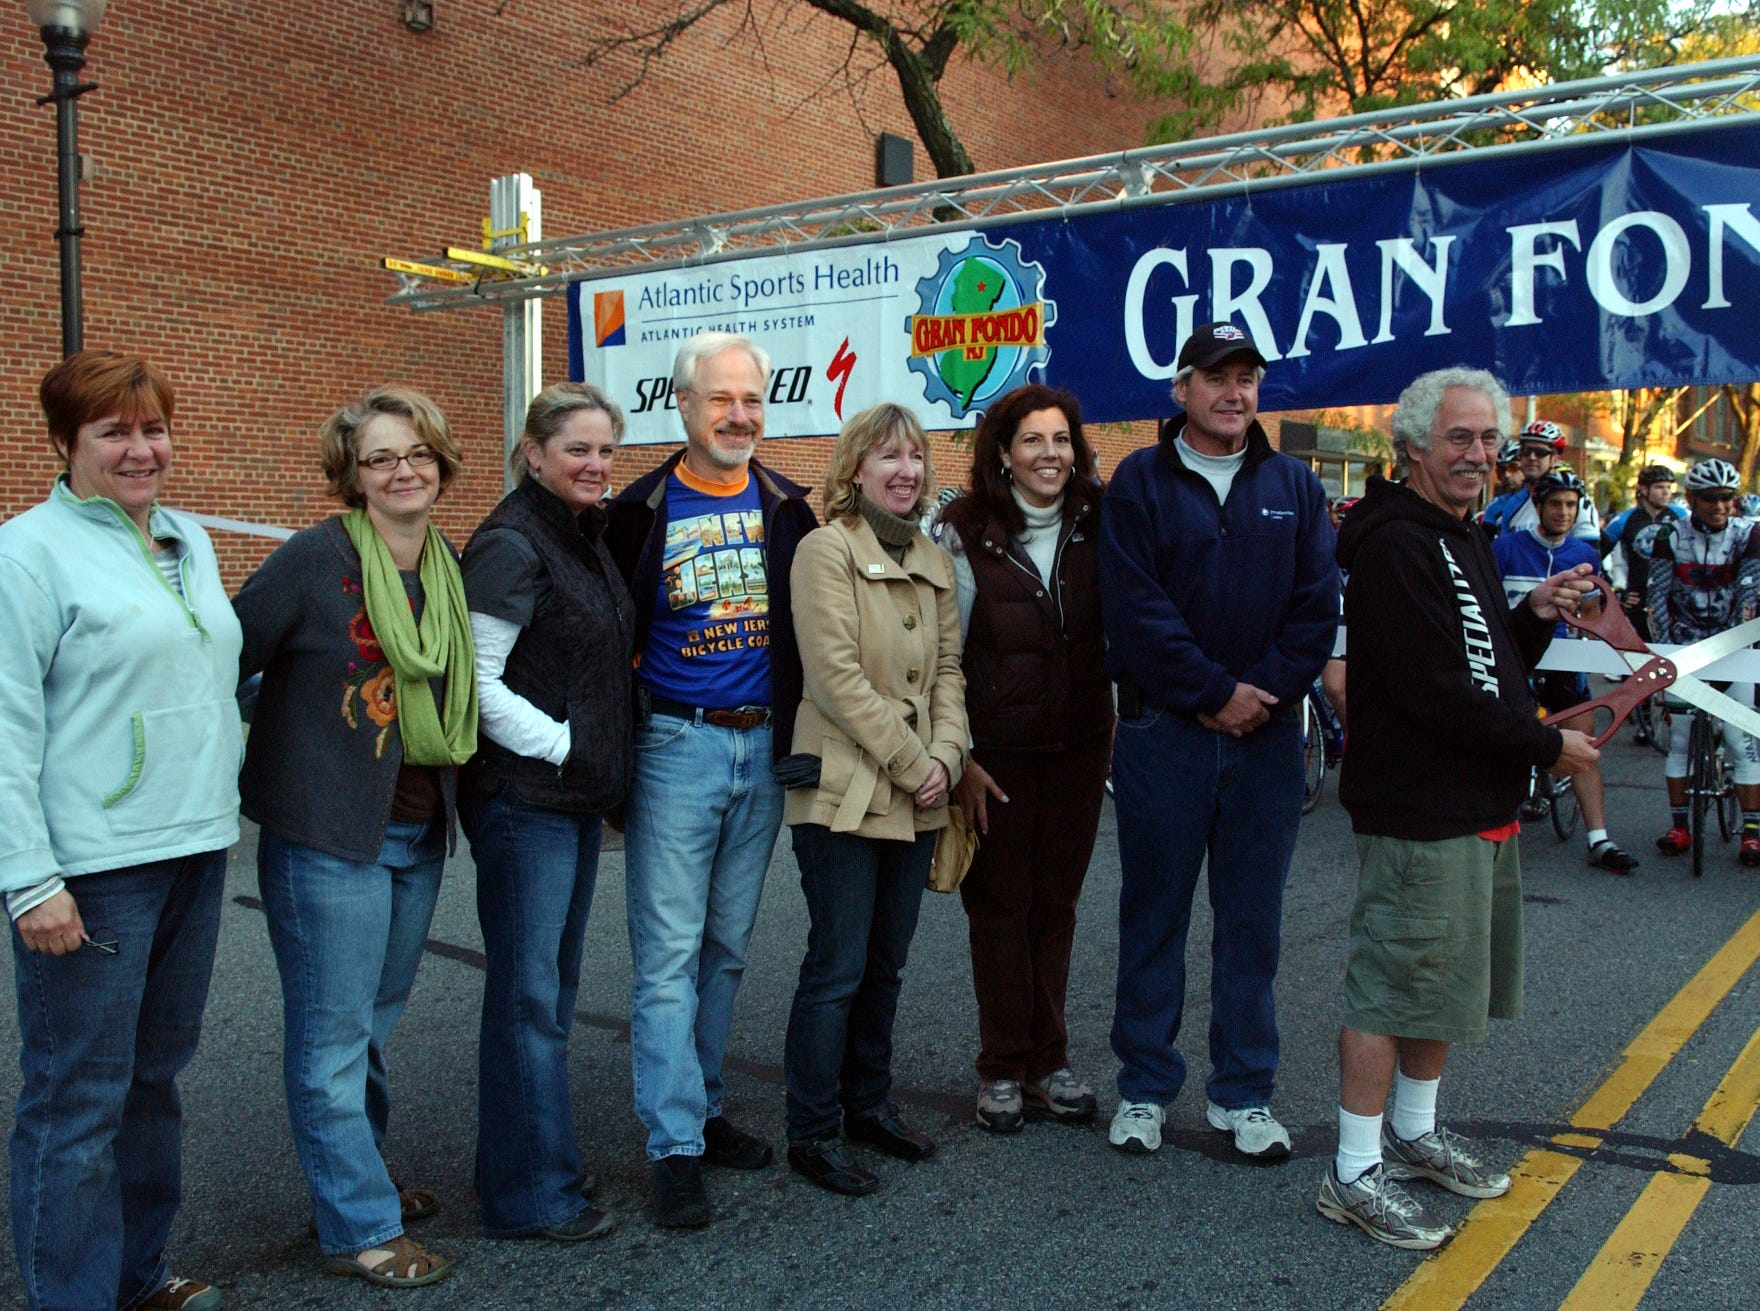 As ride organizer Marty Epstein holds the scissors, ride beneficiaries and dignitaries gather behind him (from right): Morristown Mayor Tim Dougherty, Wendi Zimmerman and Susan Robinson from Homeless Solutions, Morris Township Mayor H. Scott Rosenbush, and Grow It Green Morristown organizers Myra Bowie McCready, Samantha Rothman, Carolle Huber.